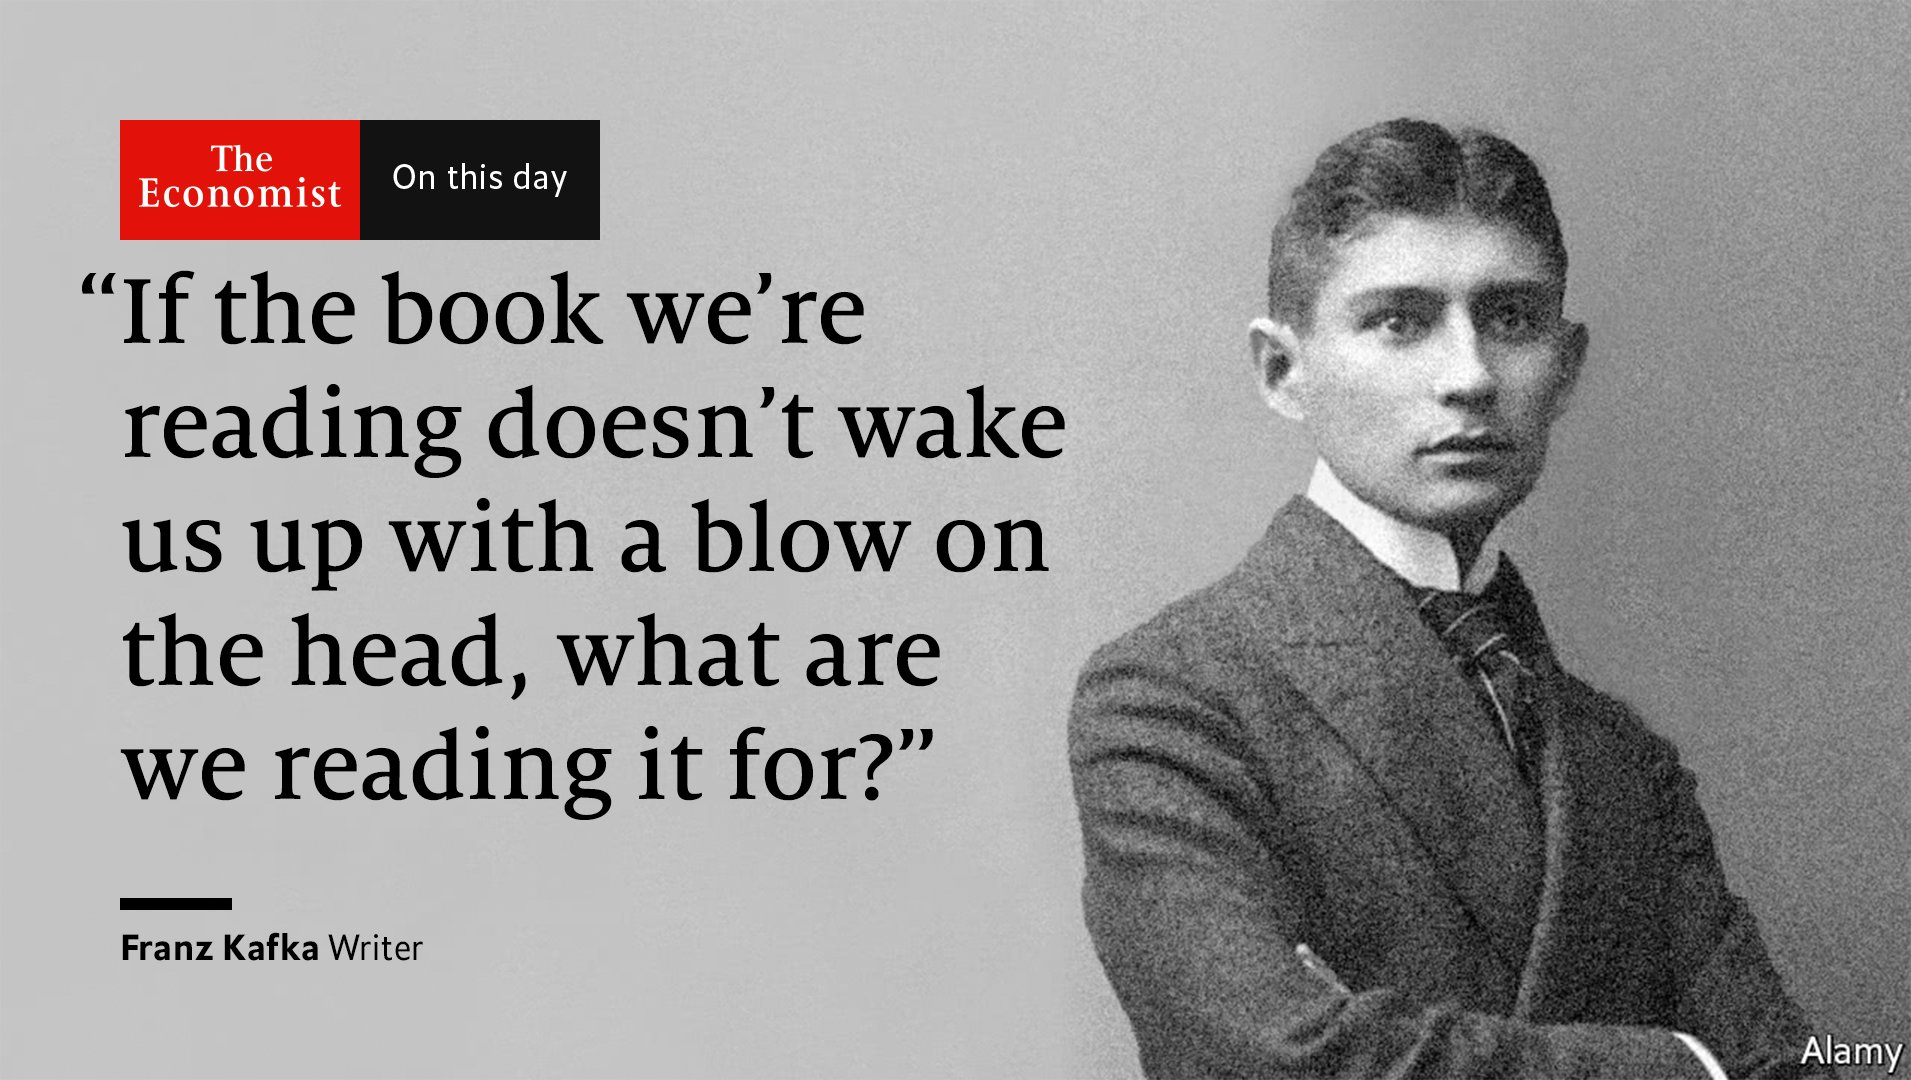 Kafka died #OnThisDay 1924. In an age of backlash against globalisation, his later life takes on a new significance https://t.co/PxNbCsayZI https://t.co/RLIYd4mOOT